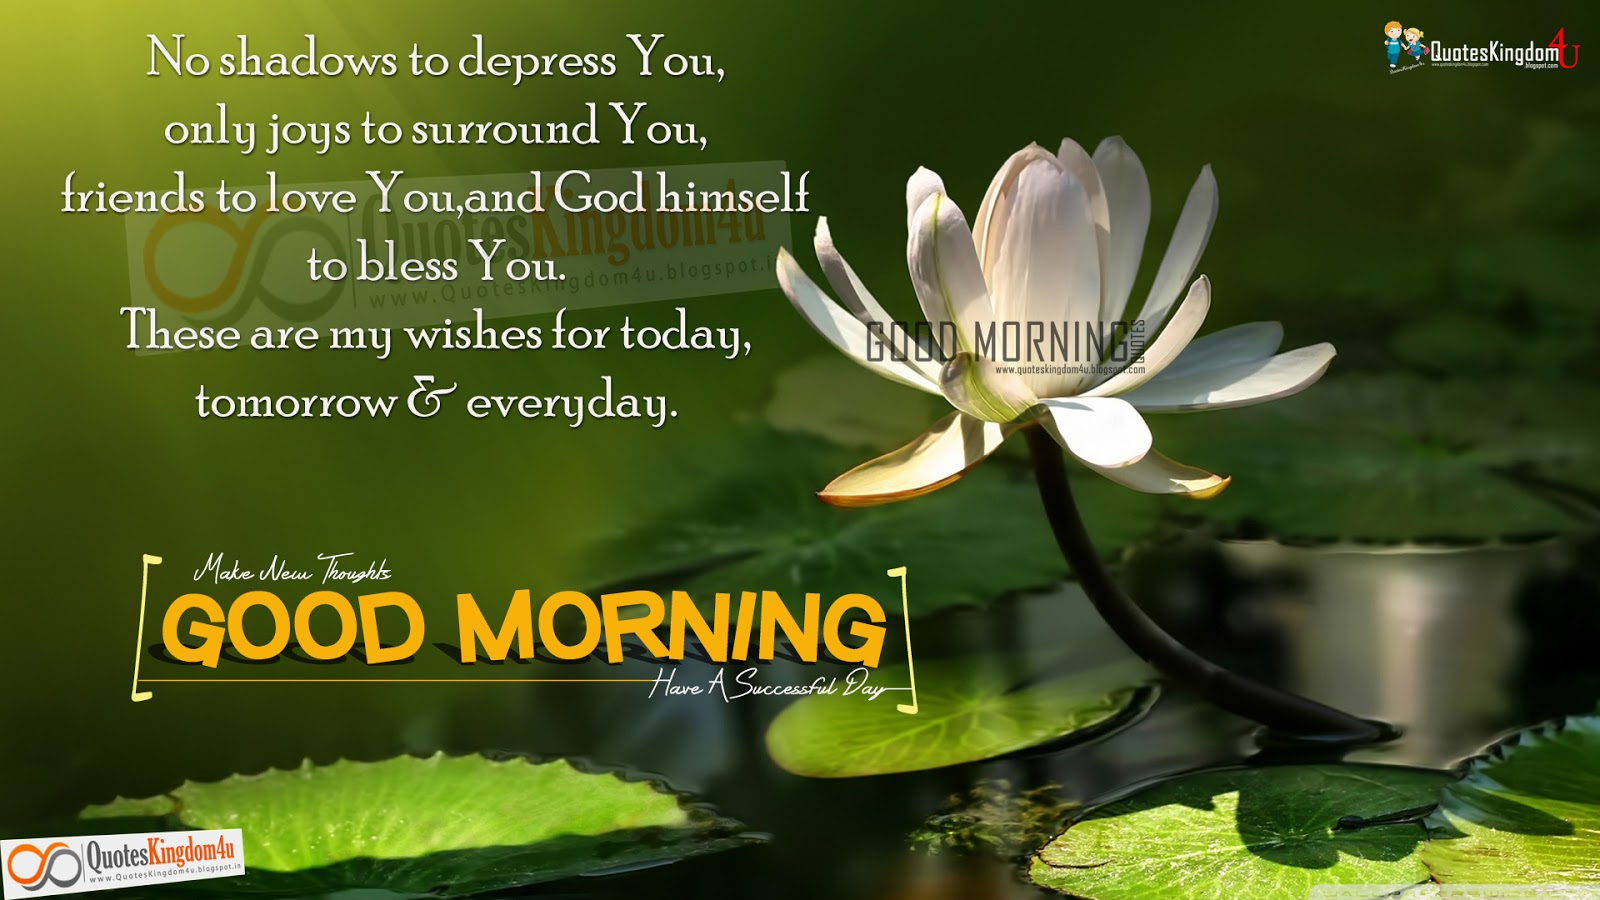 Good Morning Spiritual Quotes Good Morning Spiritual Quotes Cool Good Morning Spiritual Quotes